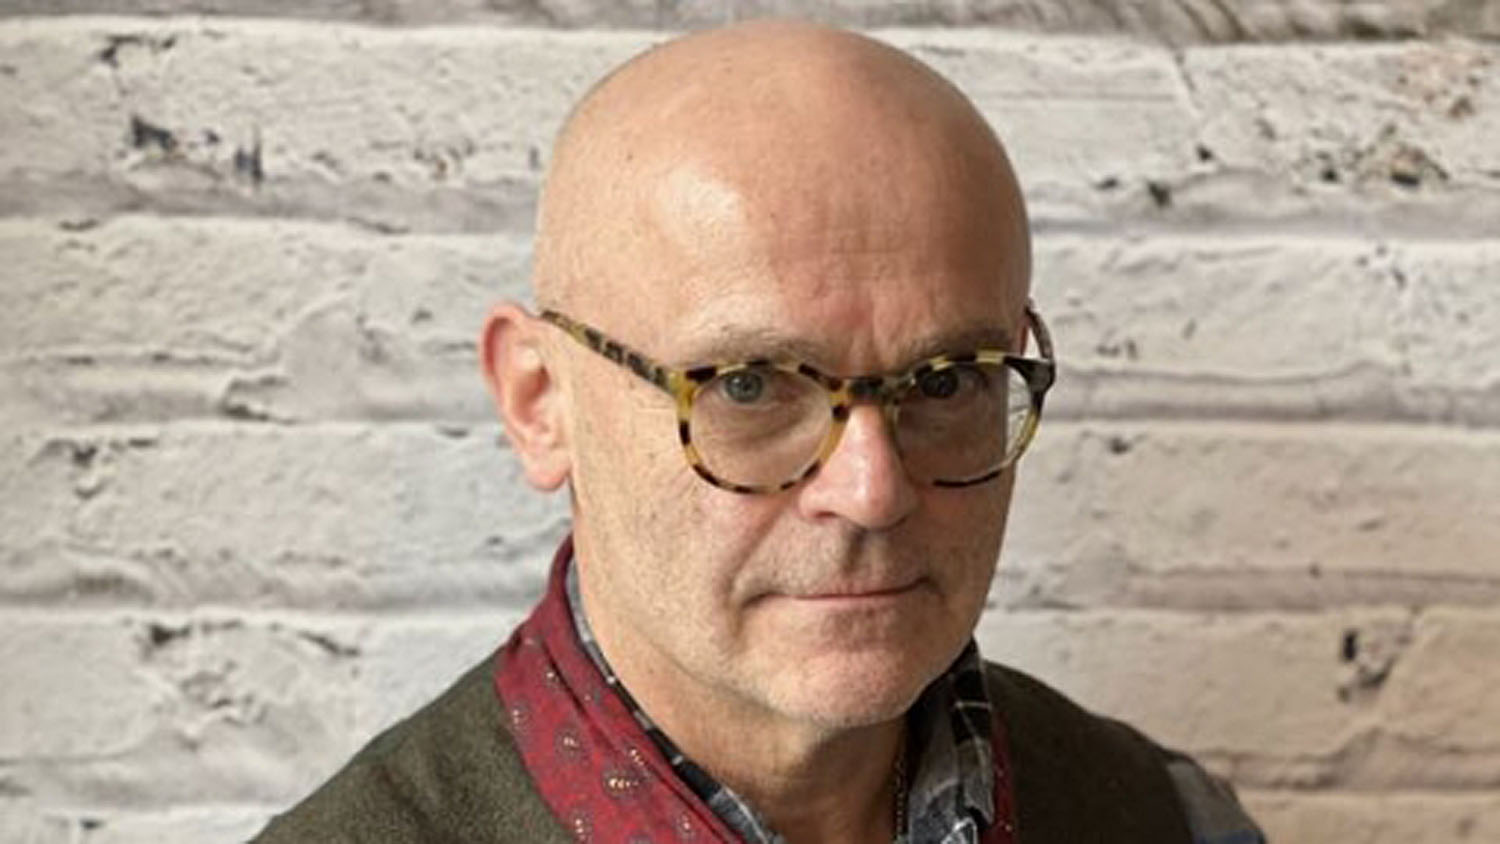 Newen launches UK indie with Gub Neal